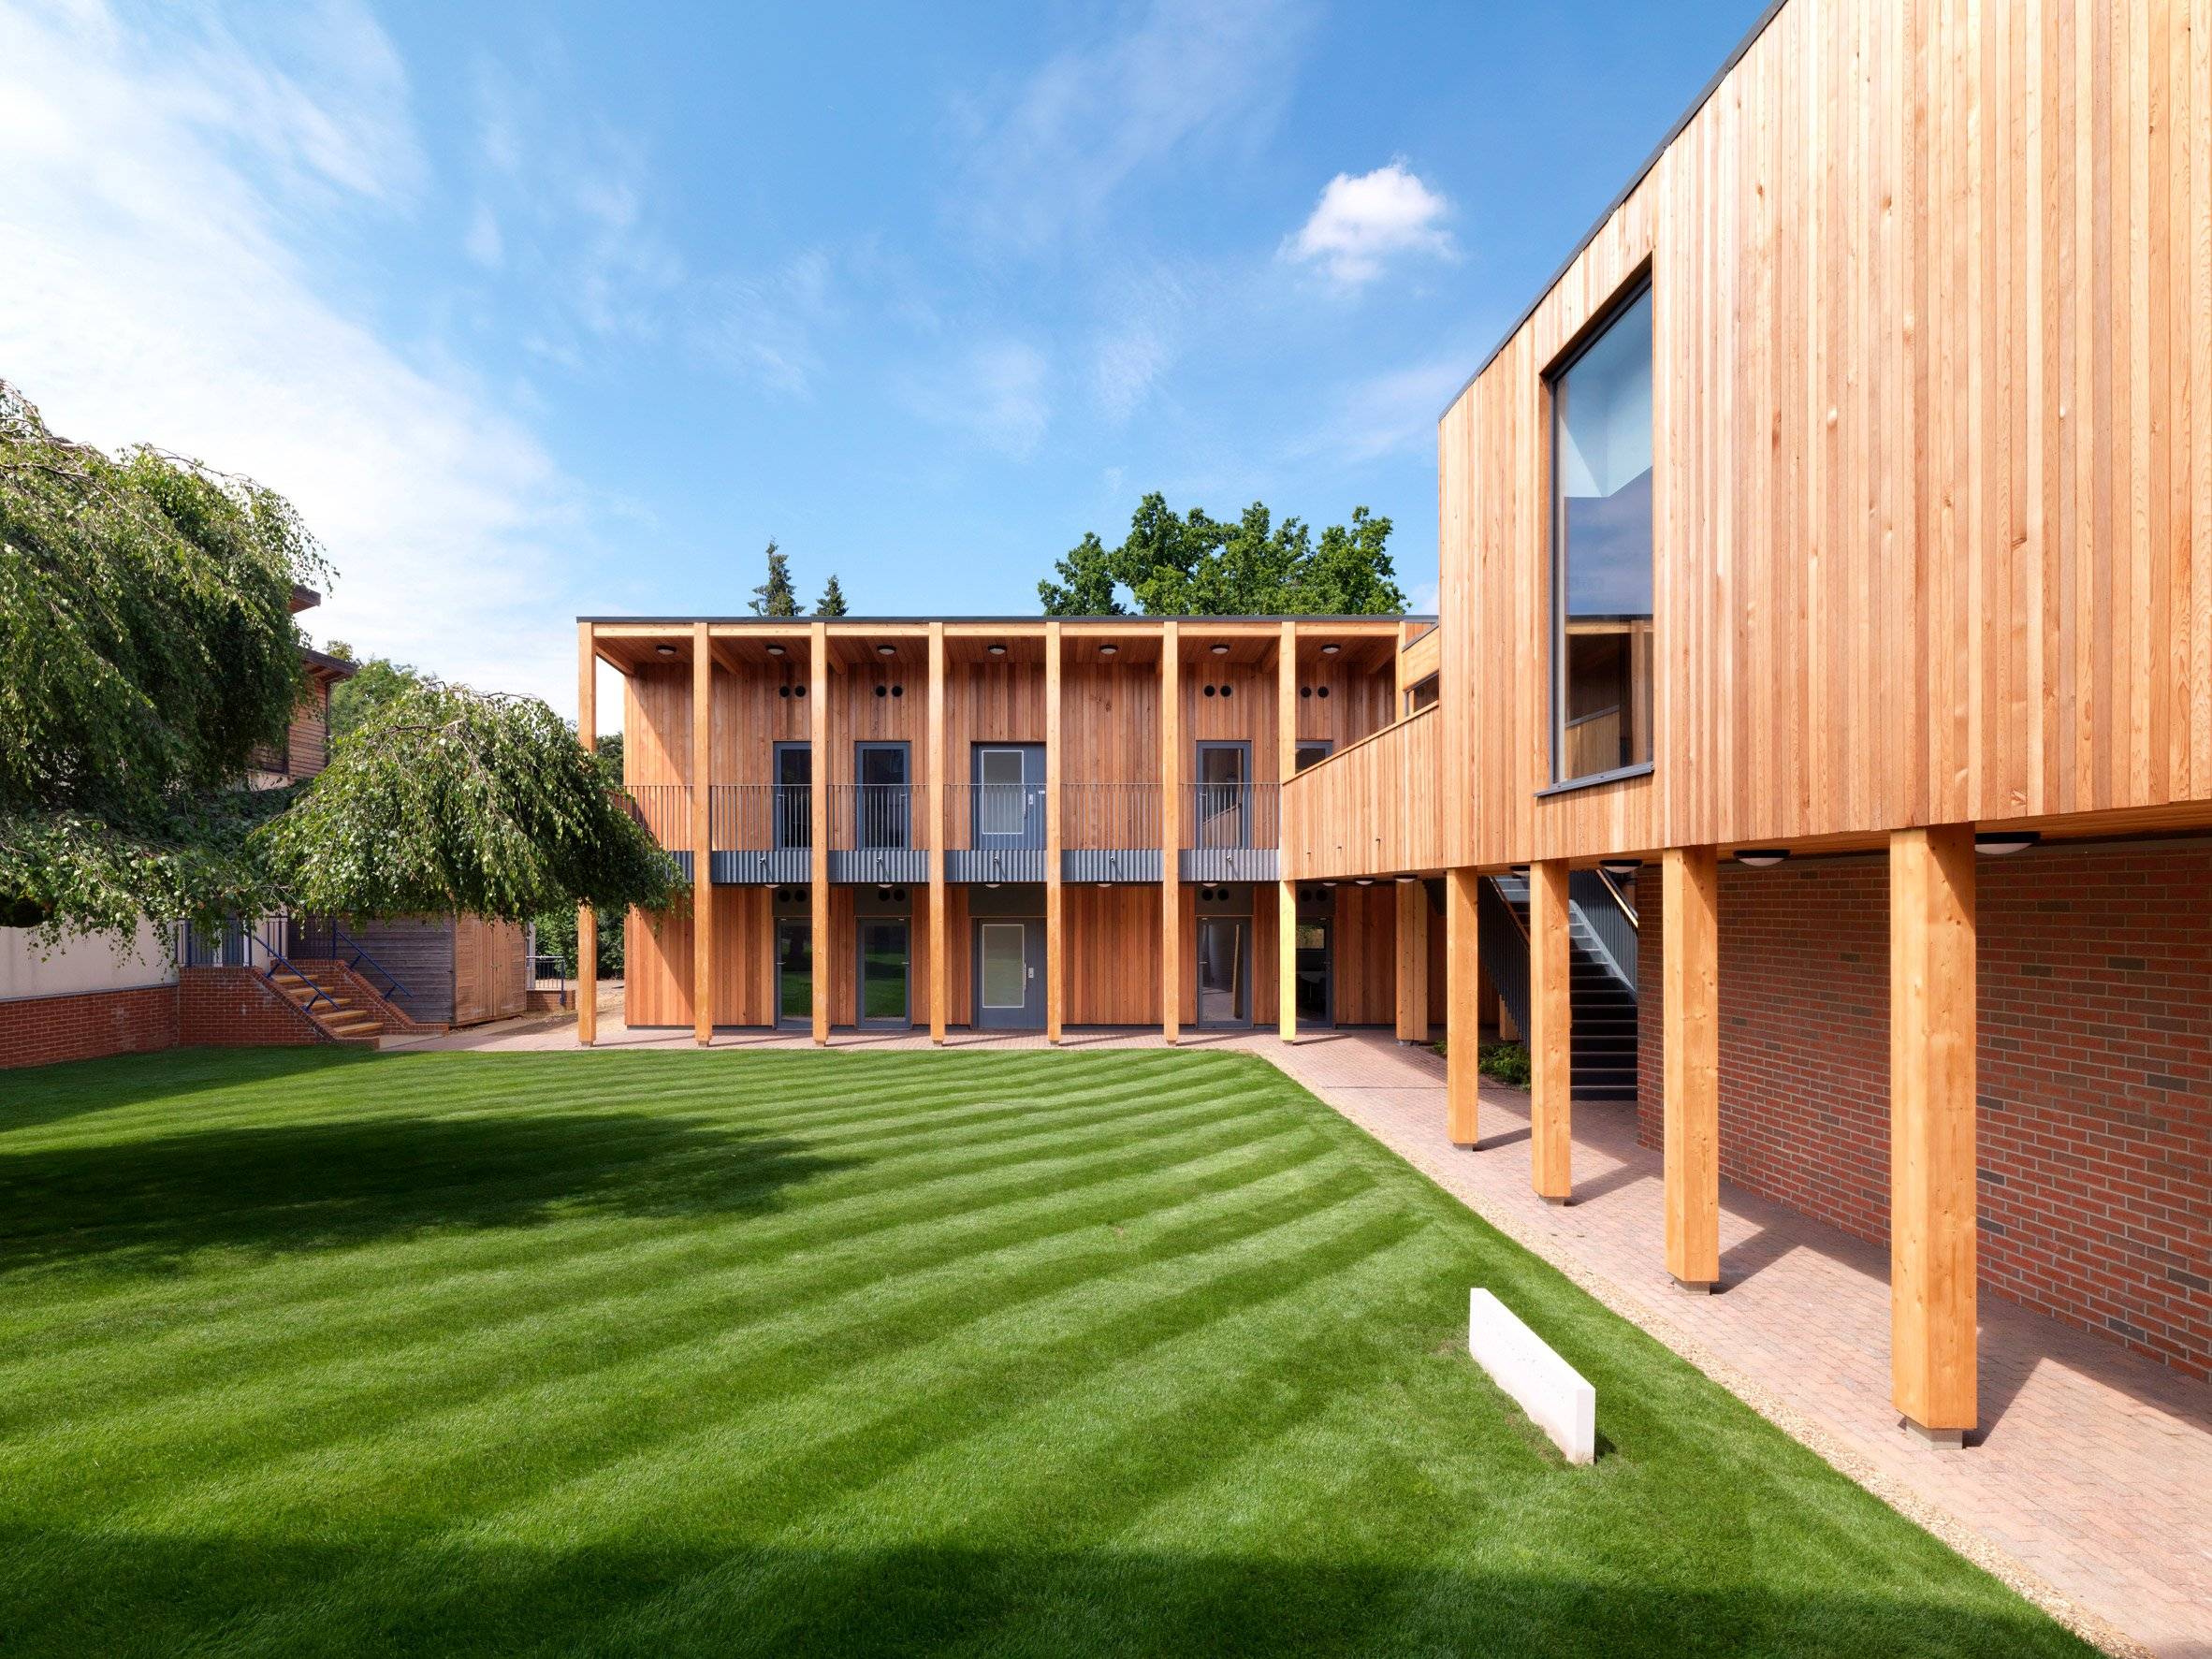 St Teresa's Sixth Form College by IF_DO